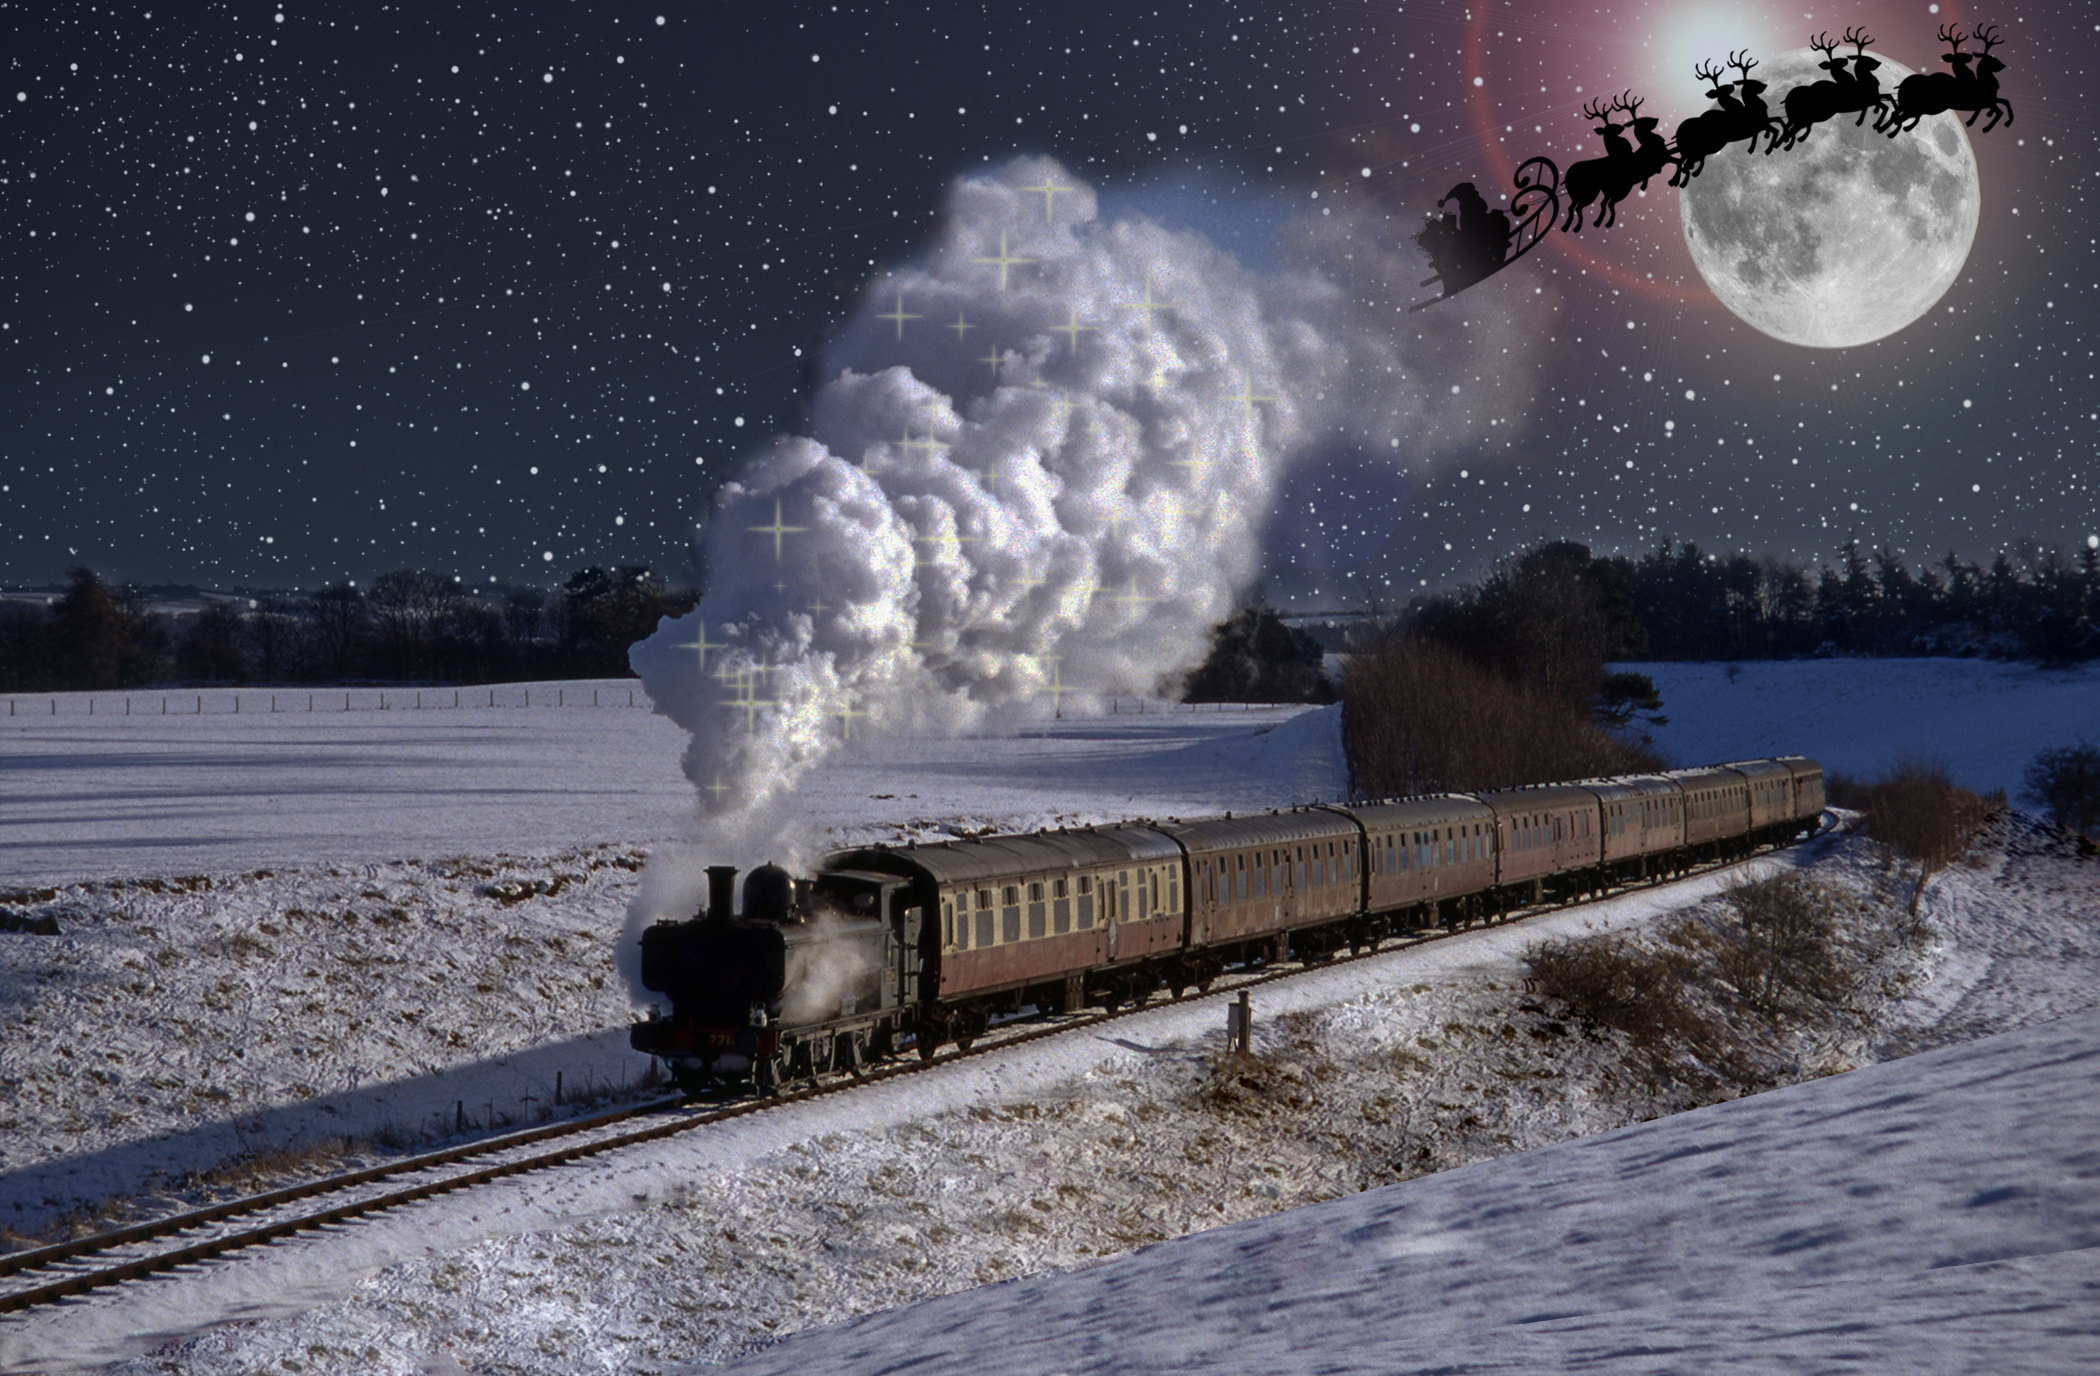 Barnshaws keeps the Polar Express running